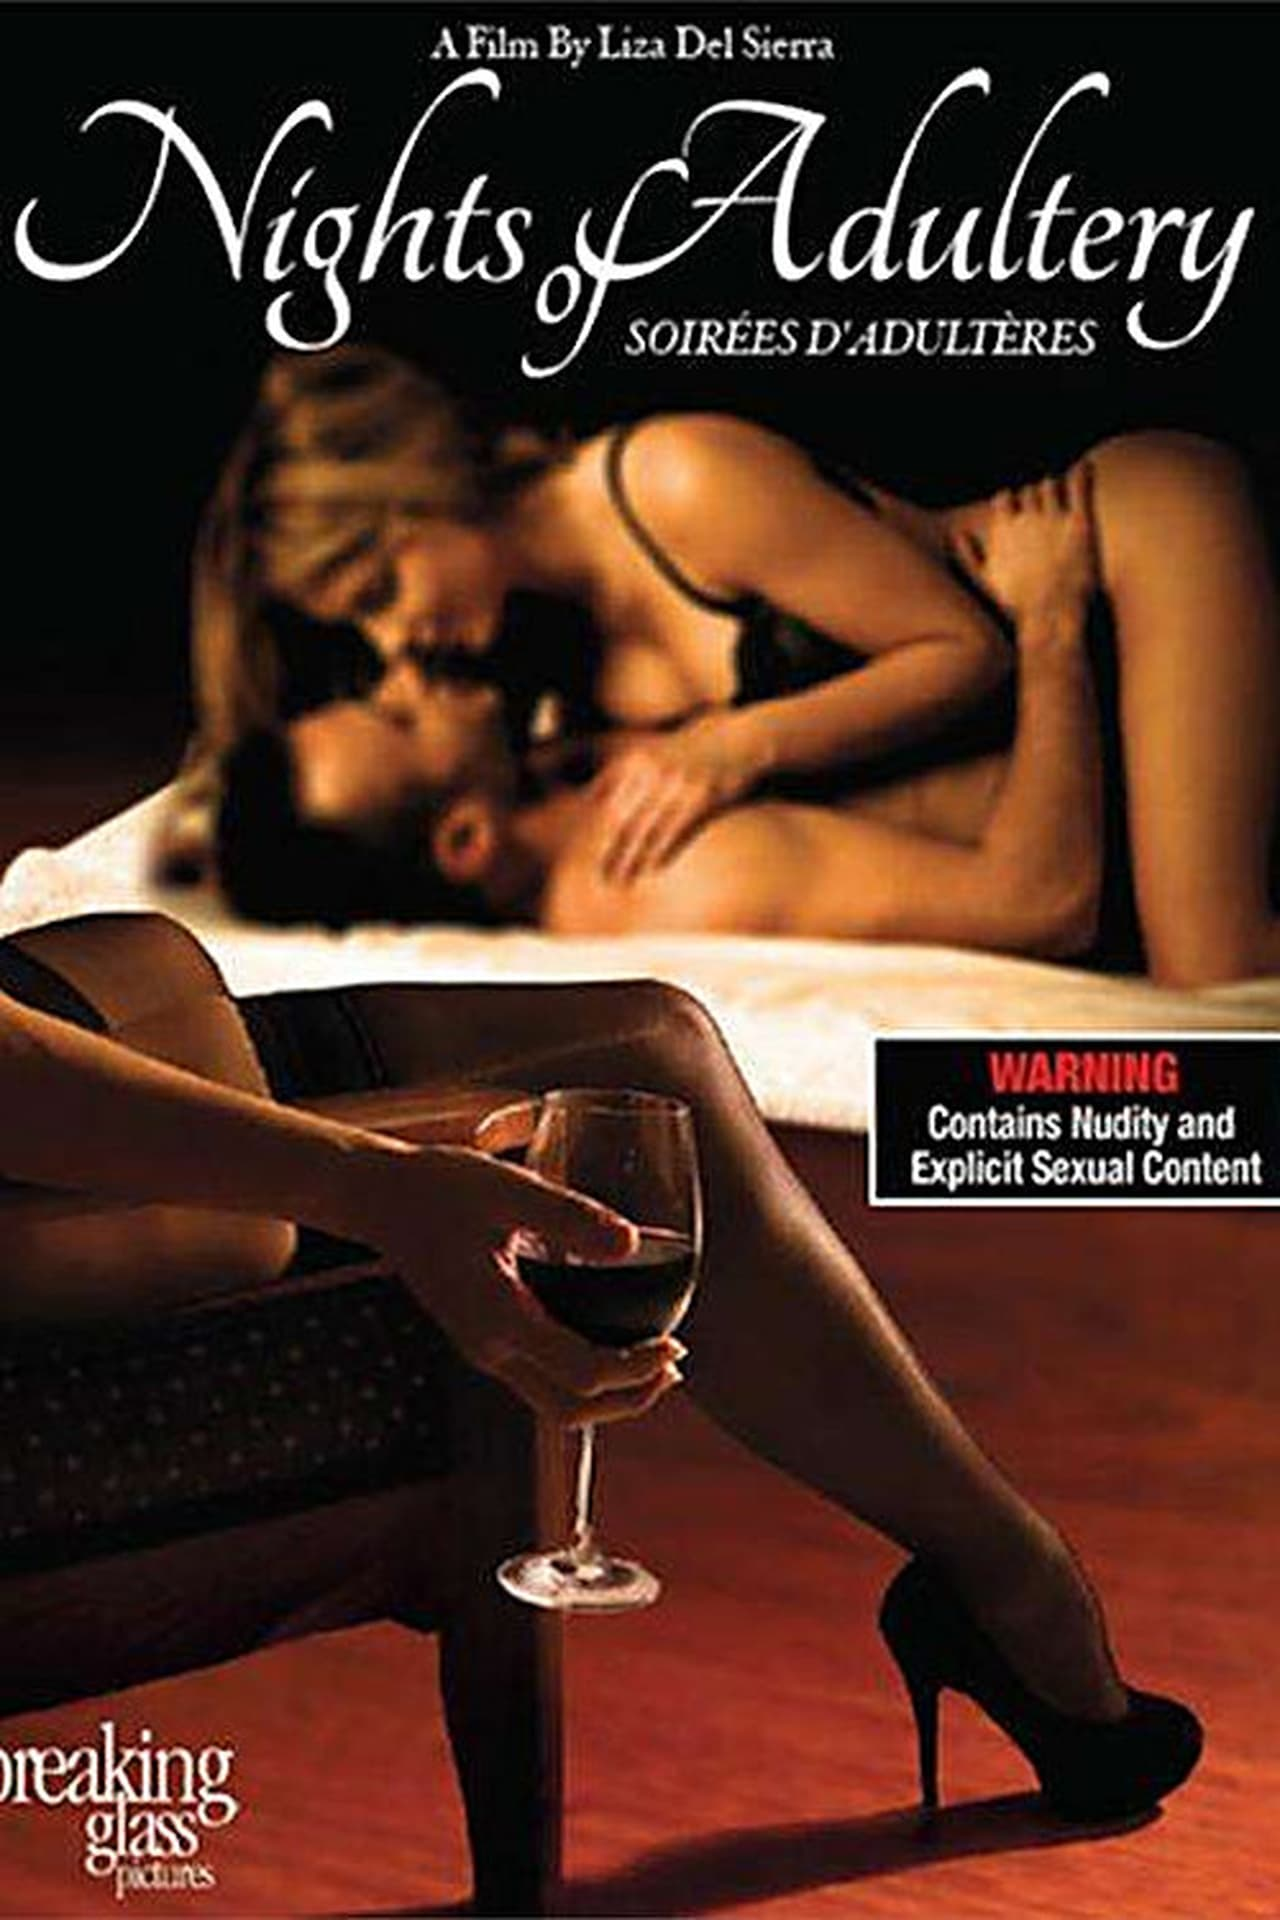 Nights of Adultery